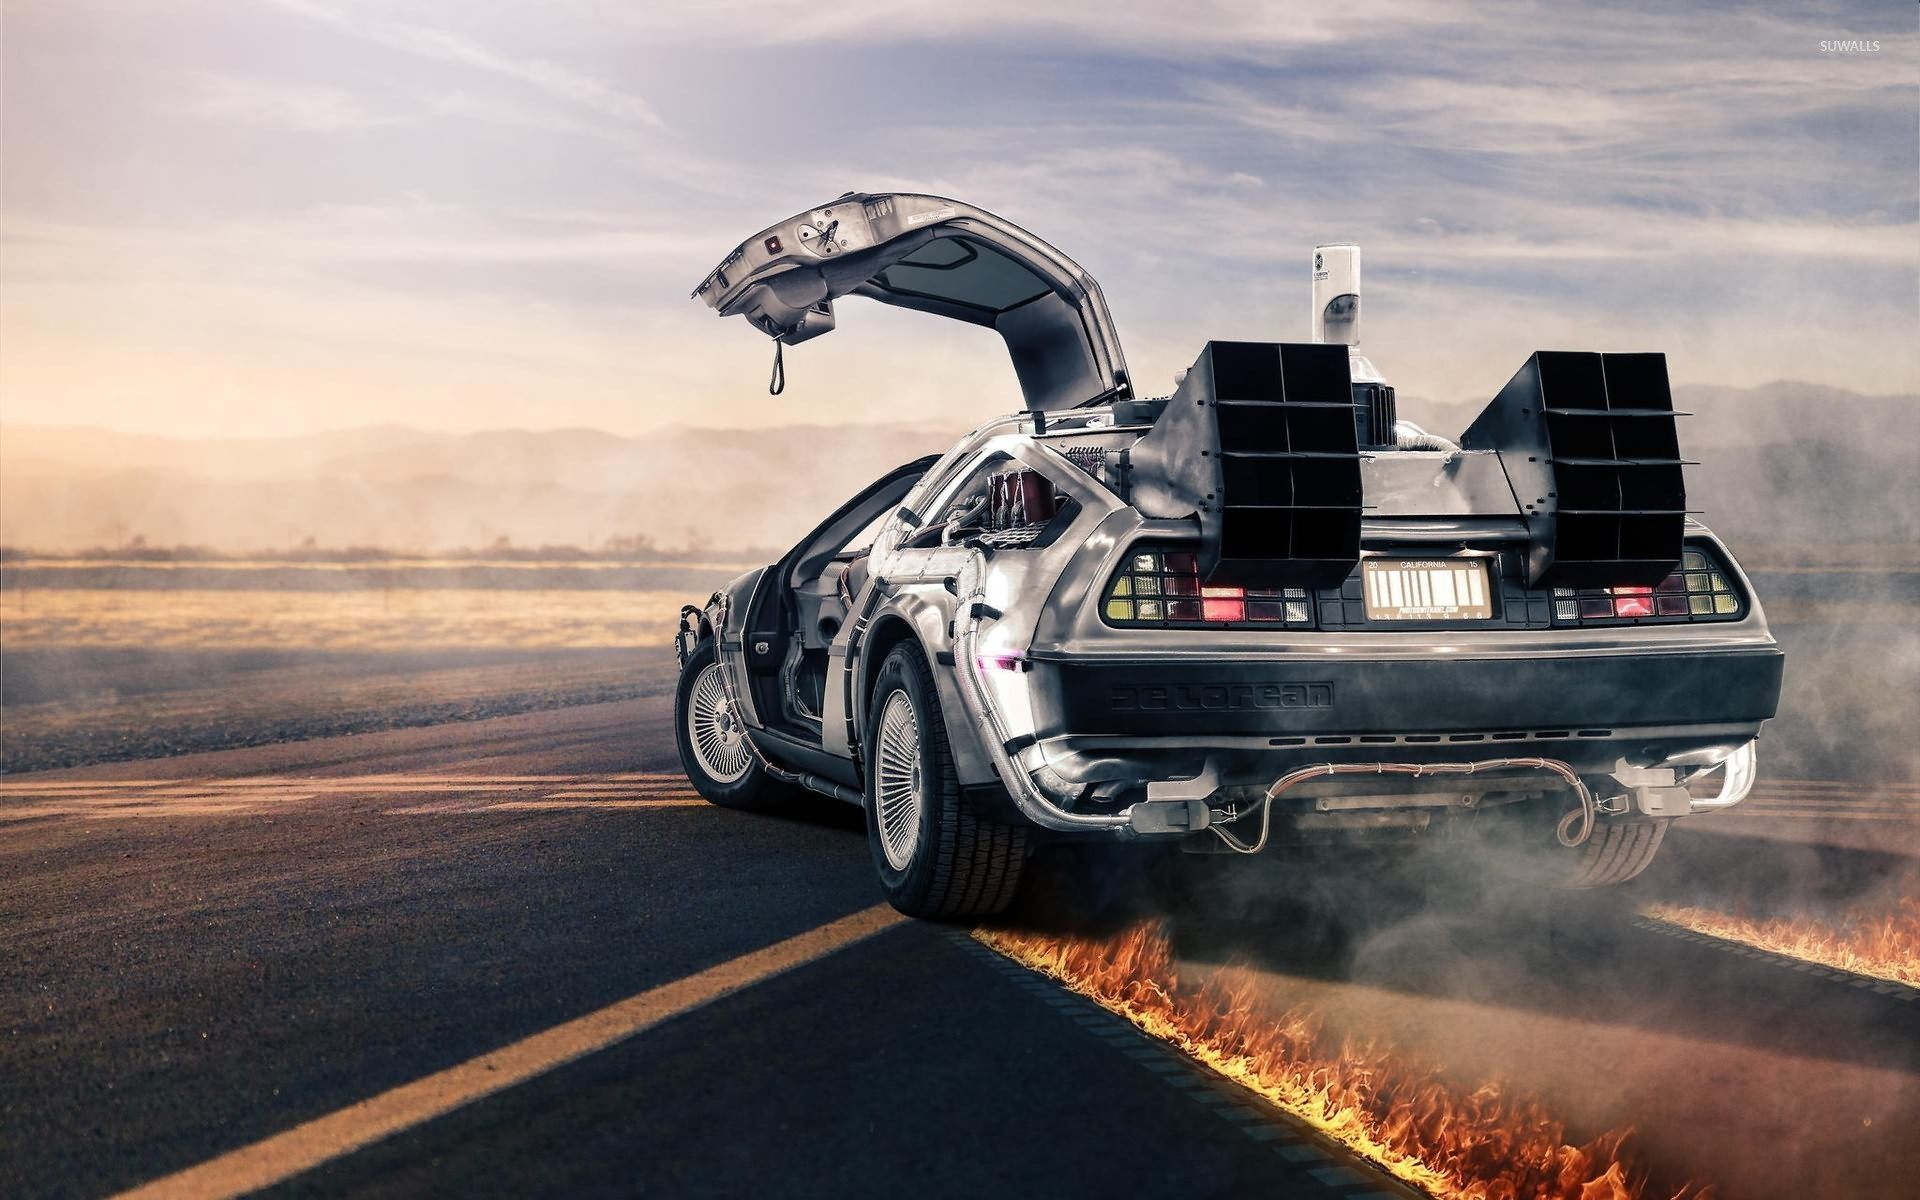 delorean wallpaper download - photo #32